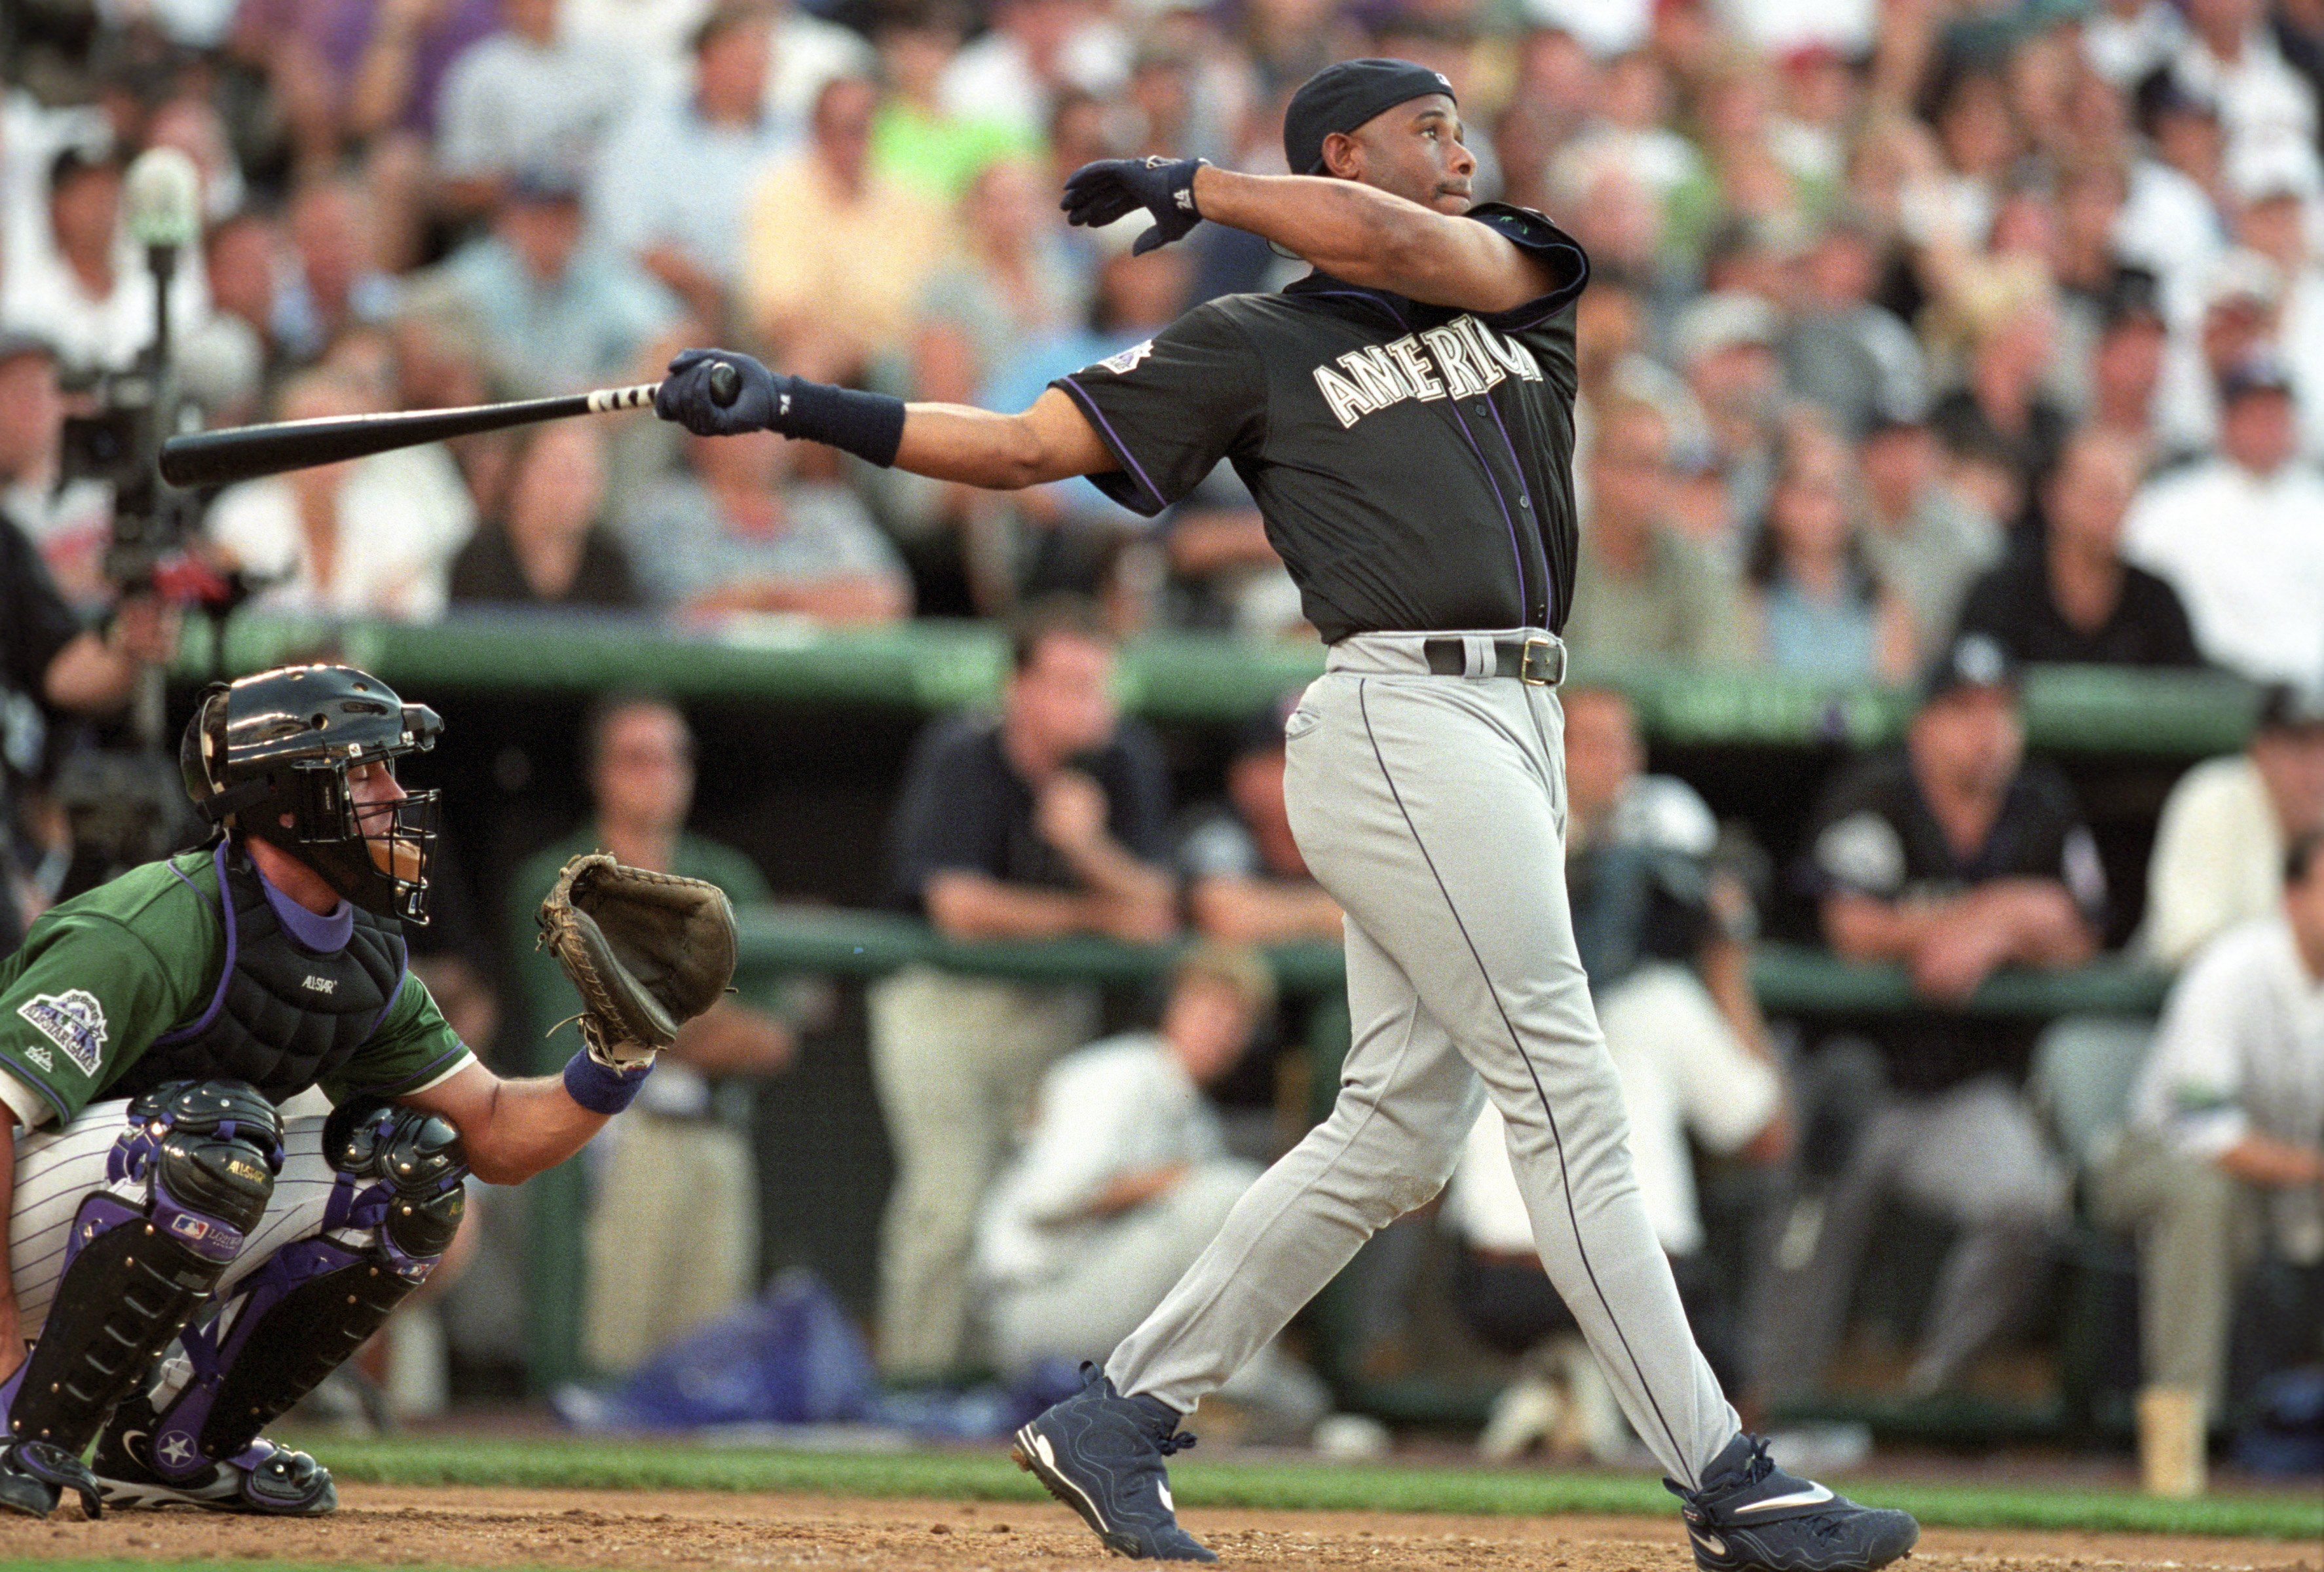 reputable site 7a06e cbae5 Remembering Ken Griffey Jr.'s best All-Star Game/HR Derby ...